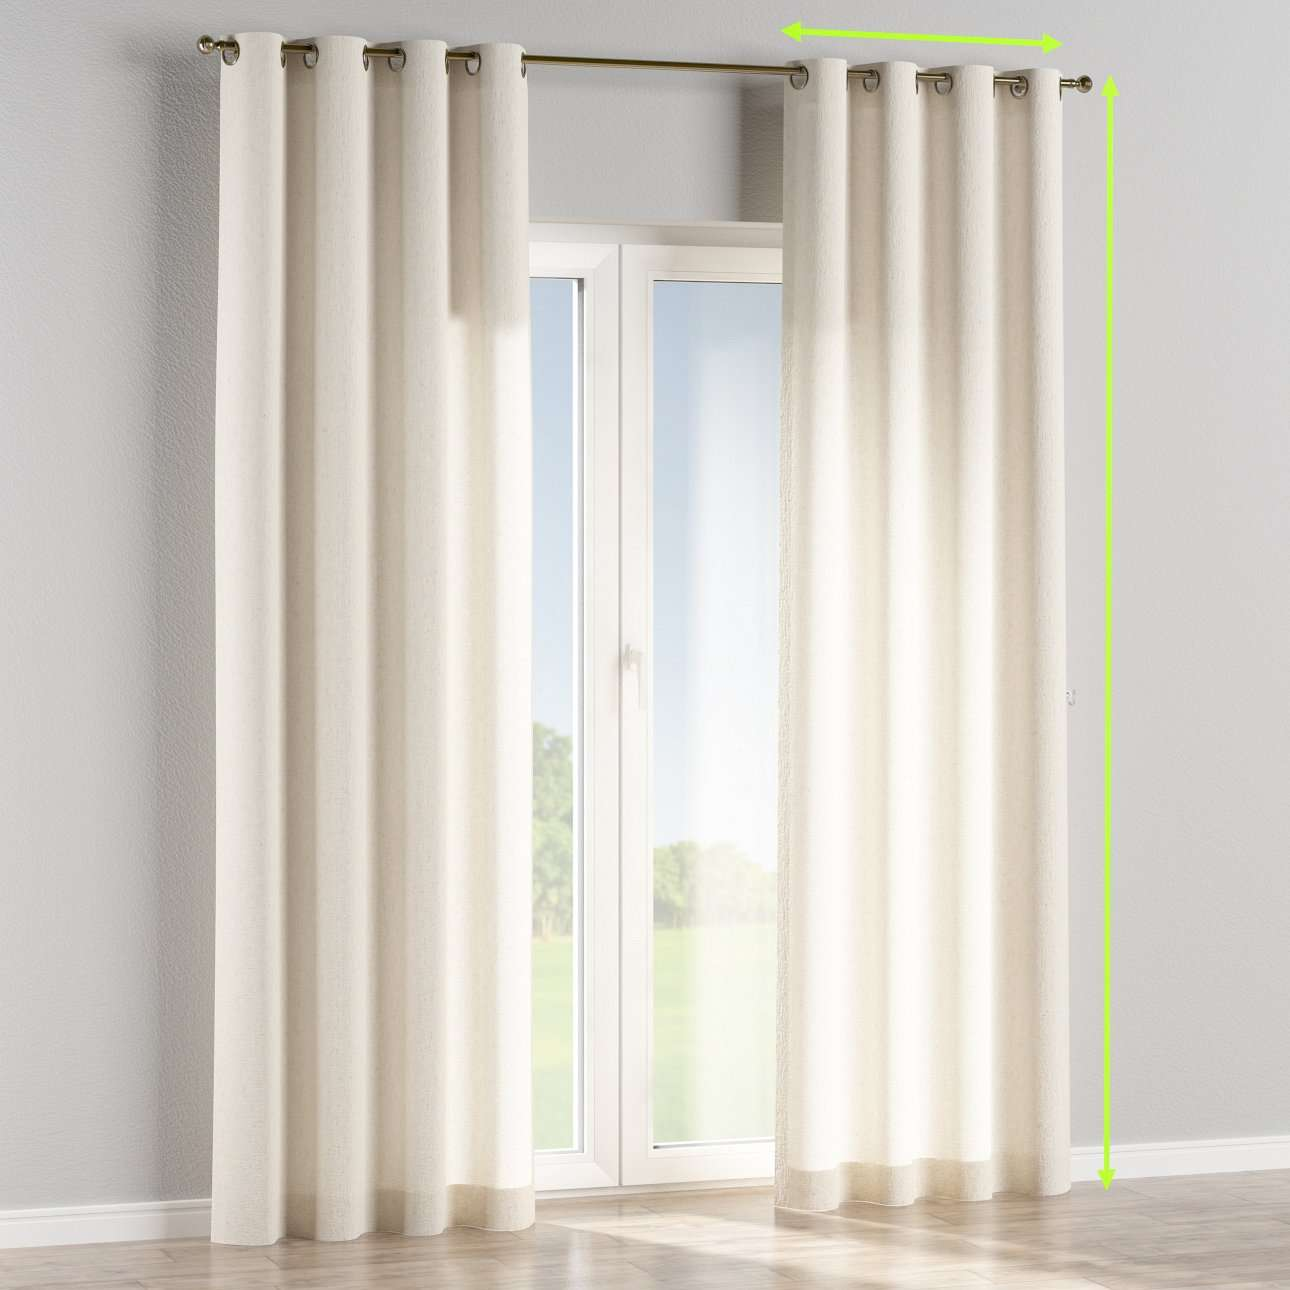 Eyelet curtains in collection Loneta , fabric: 133-01